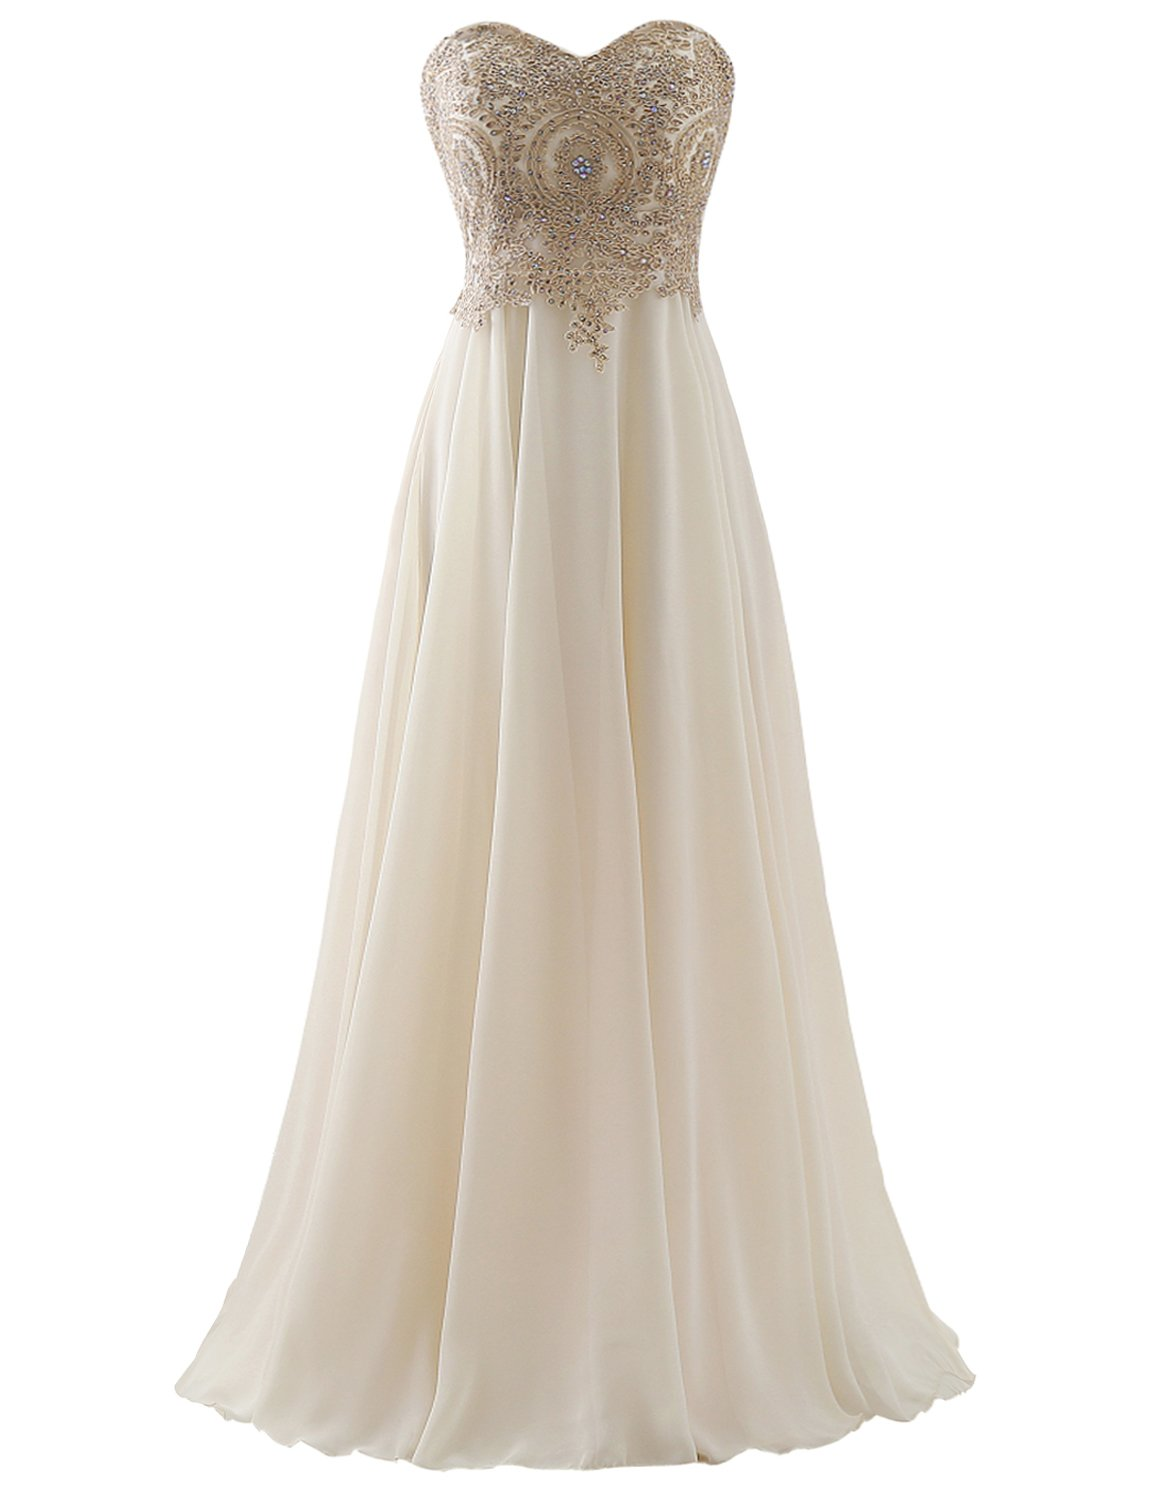 Erosebridal Sweetheart Long Prom Dress With Gold Embroidery Champagne US 14